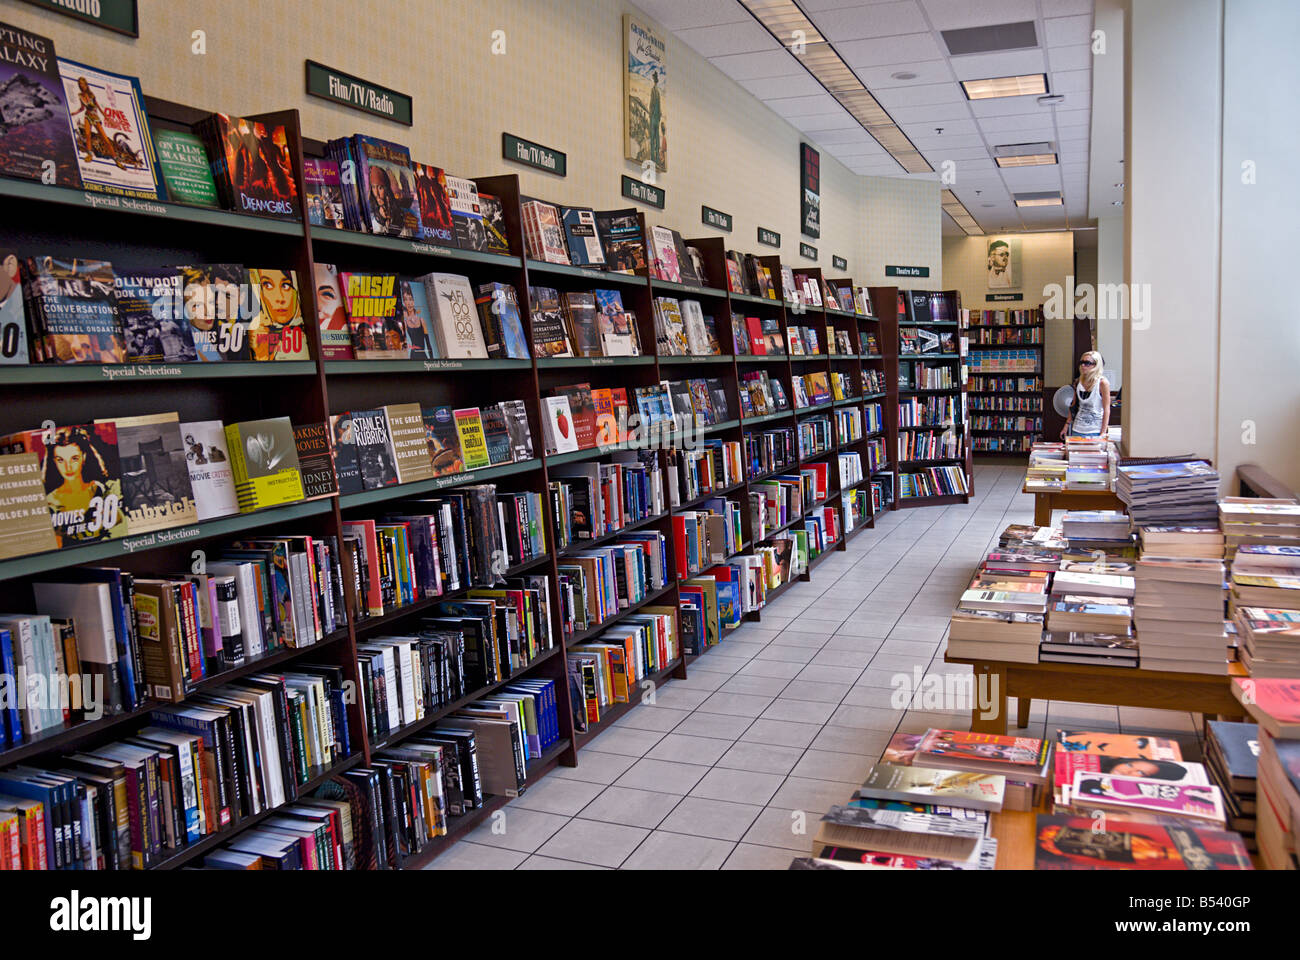 Barnes noble booksellers